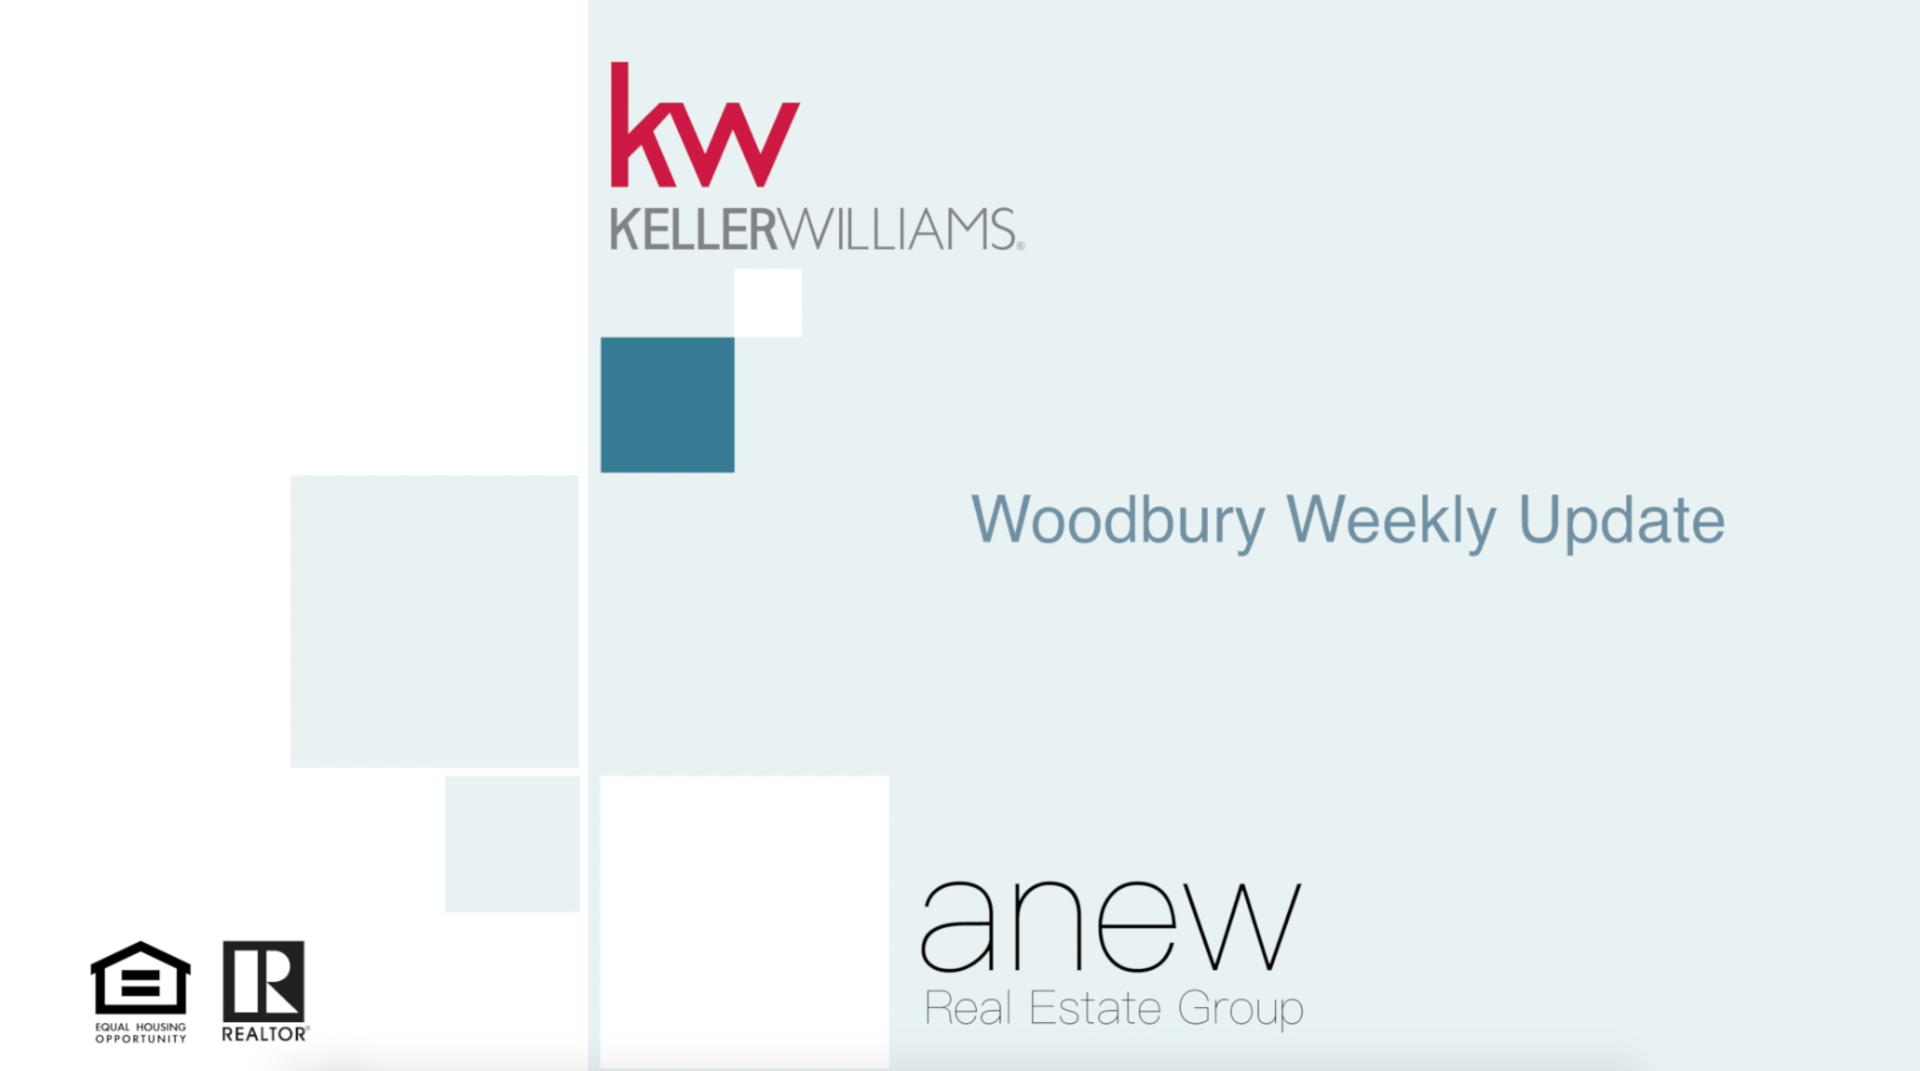 Woodbury Weekly Update for July 30th, 2018